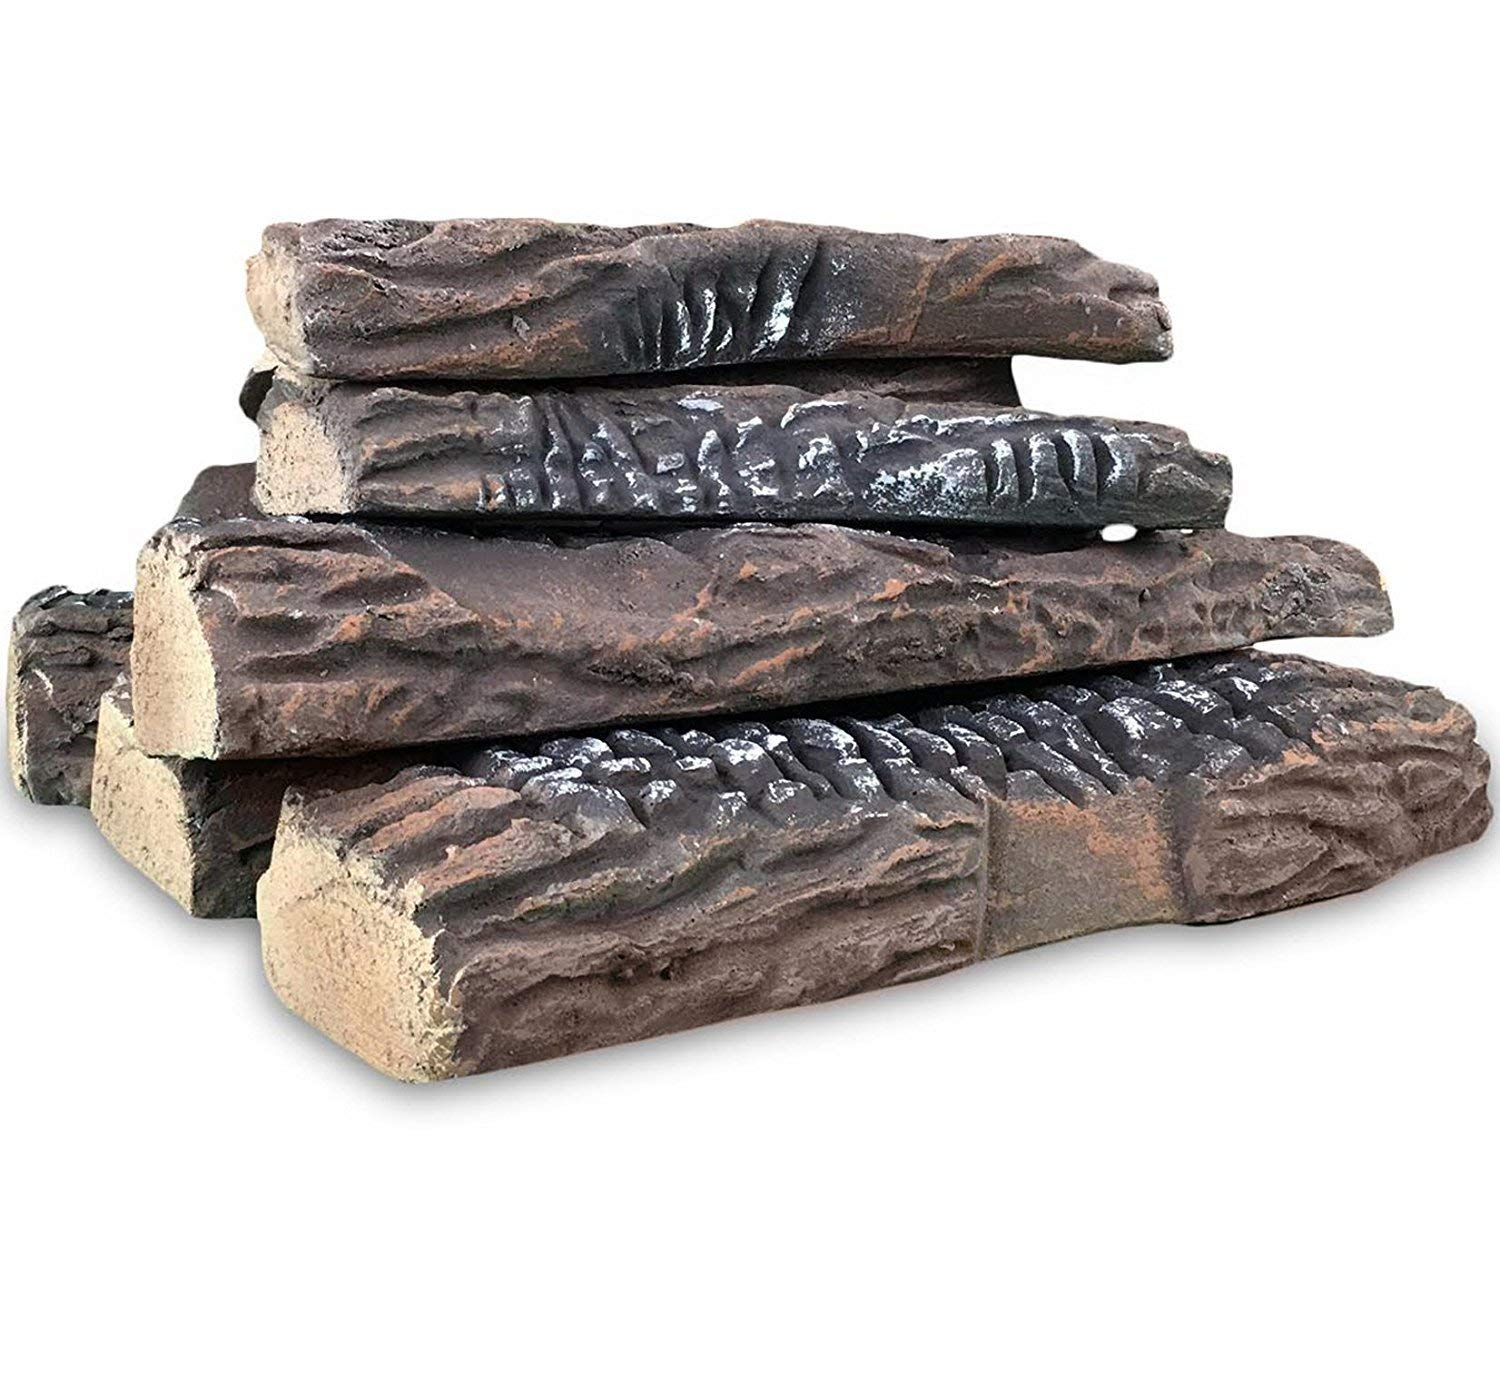 Regal Flame 10 Piece Set of Ceramic Wood Large Gas Fireplace Logs Logs for All Types of Indoor, Gas Inserts, Ventless & Vent Free, Propane, Gel, Ethanol, Electric, or Outdoor Fireplaces & Fire Pits. by Regal Flame